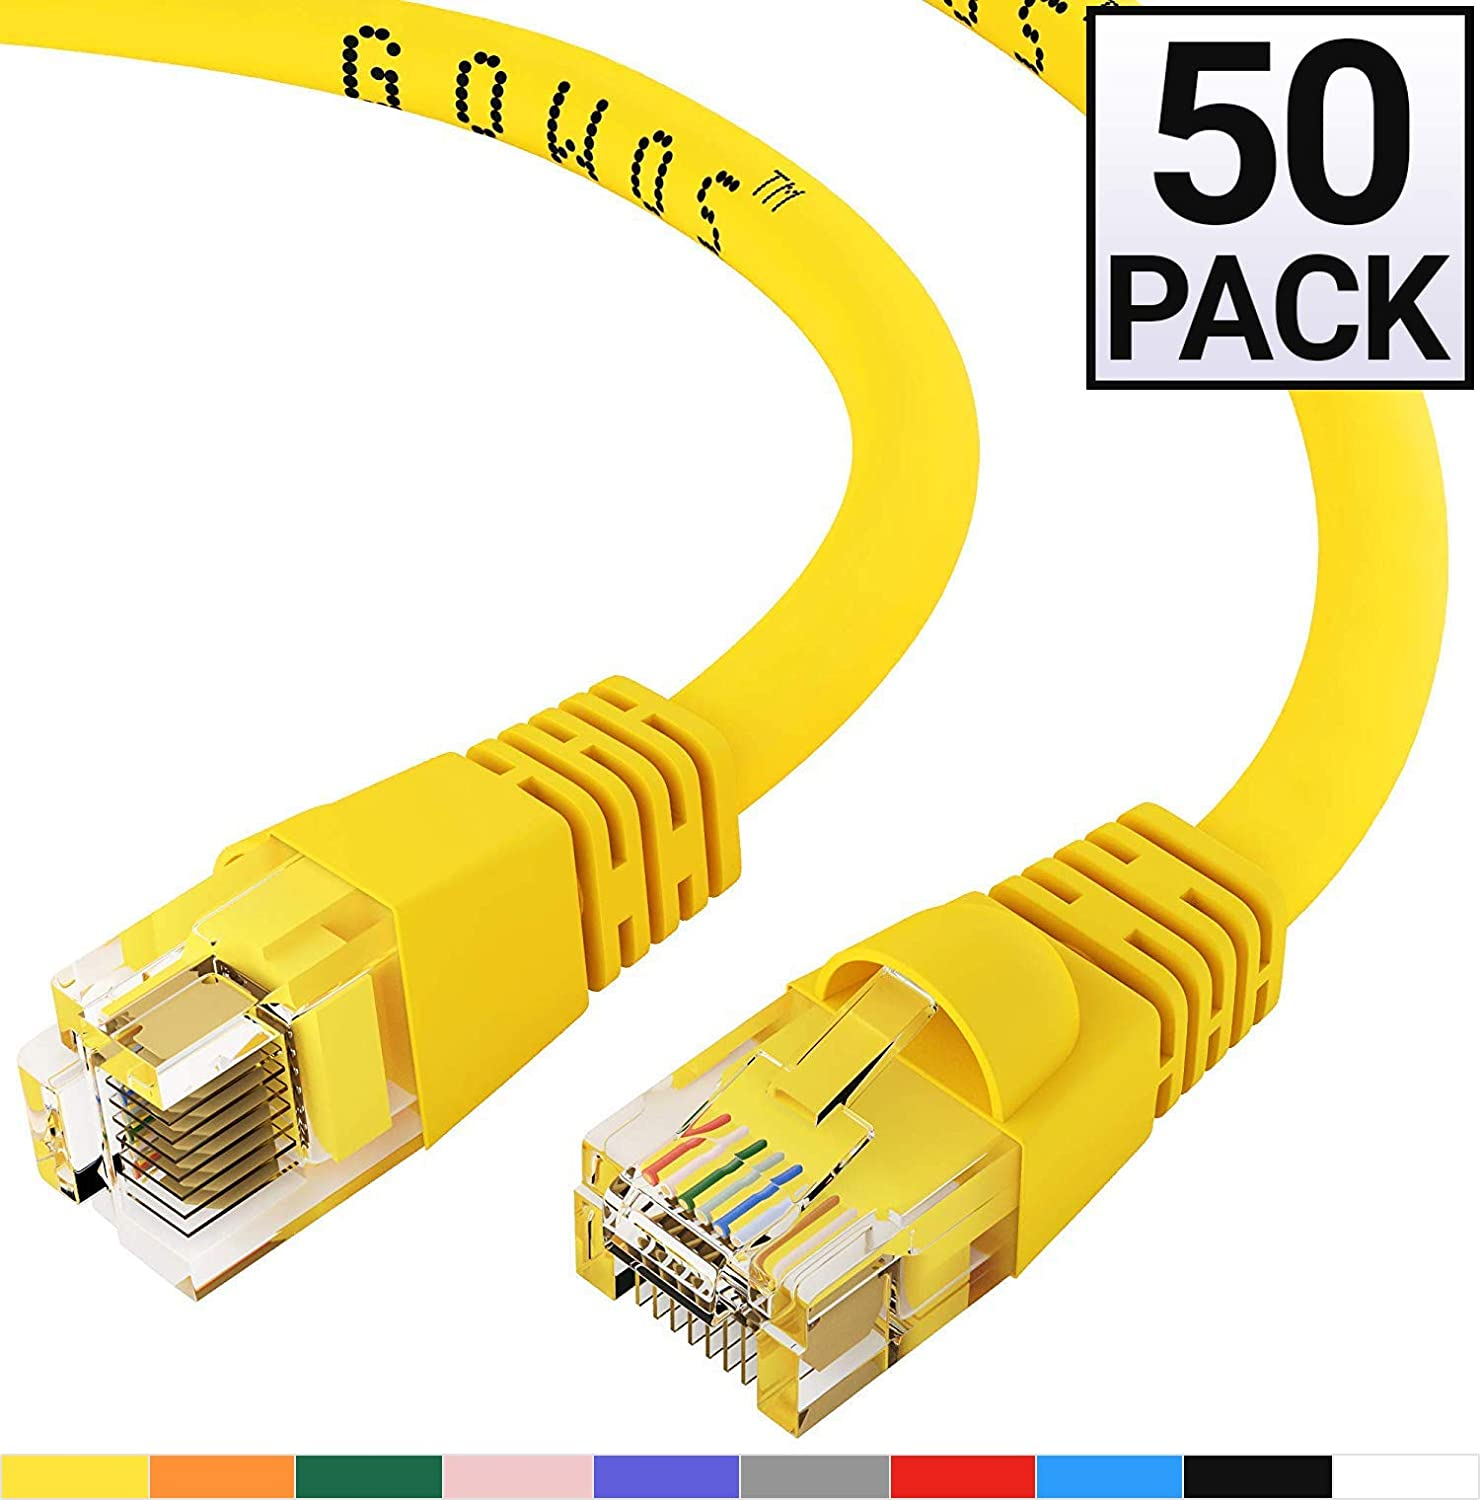 RJ45 10Gbps High Speed LAN Internet Patch Cord Cat6 Ethernet Cable GOWOS 50-Pack 7 Feet - Purple Computer Network Cable with Snagless Connector Available in 28 Lengths and 10 Colors UTP